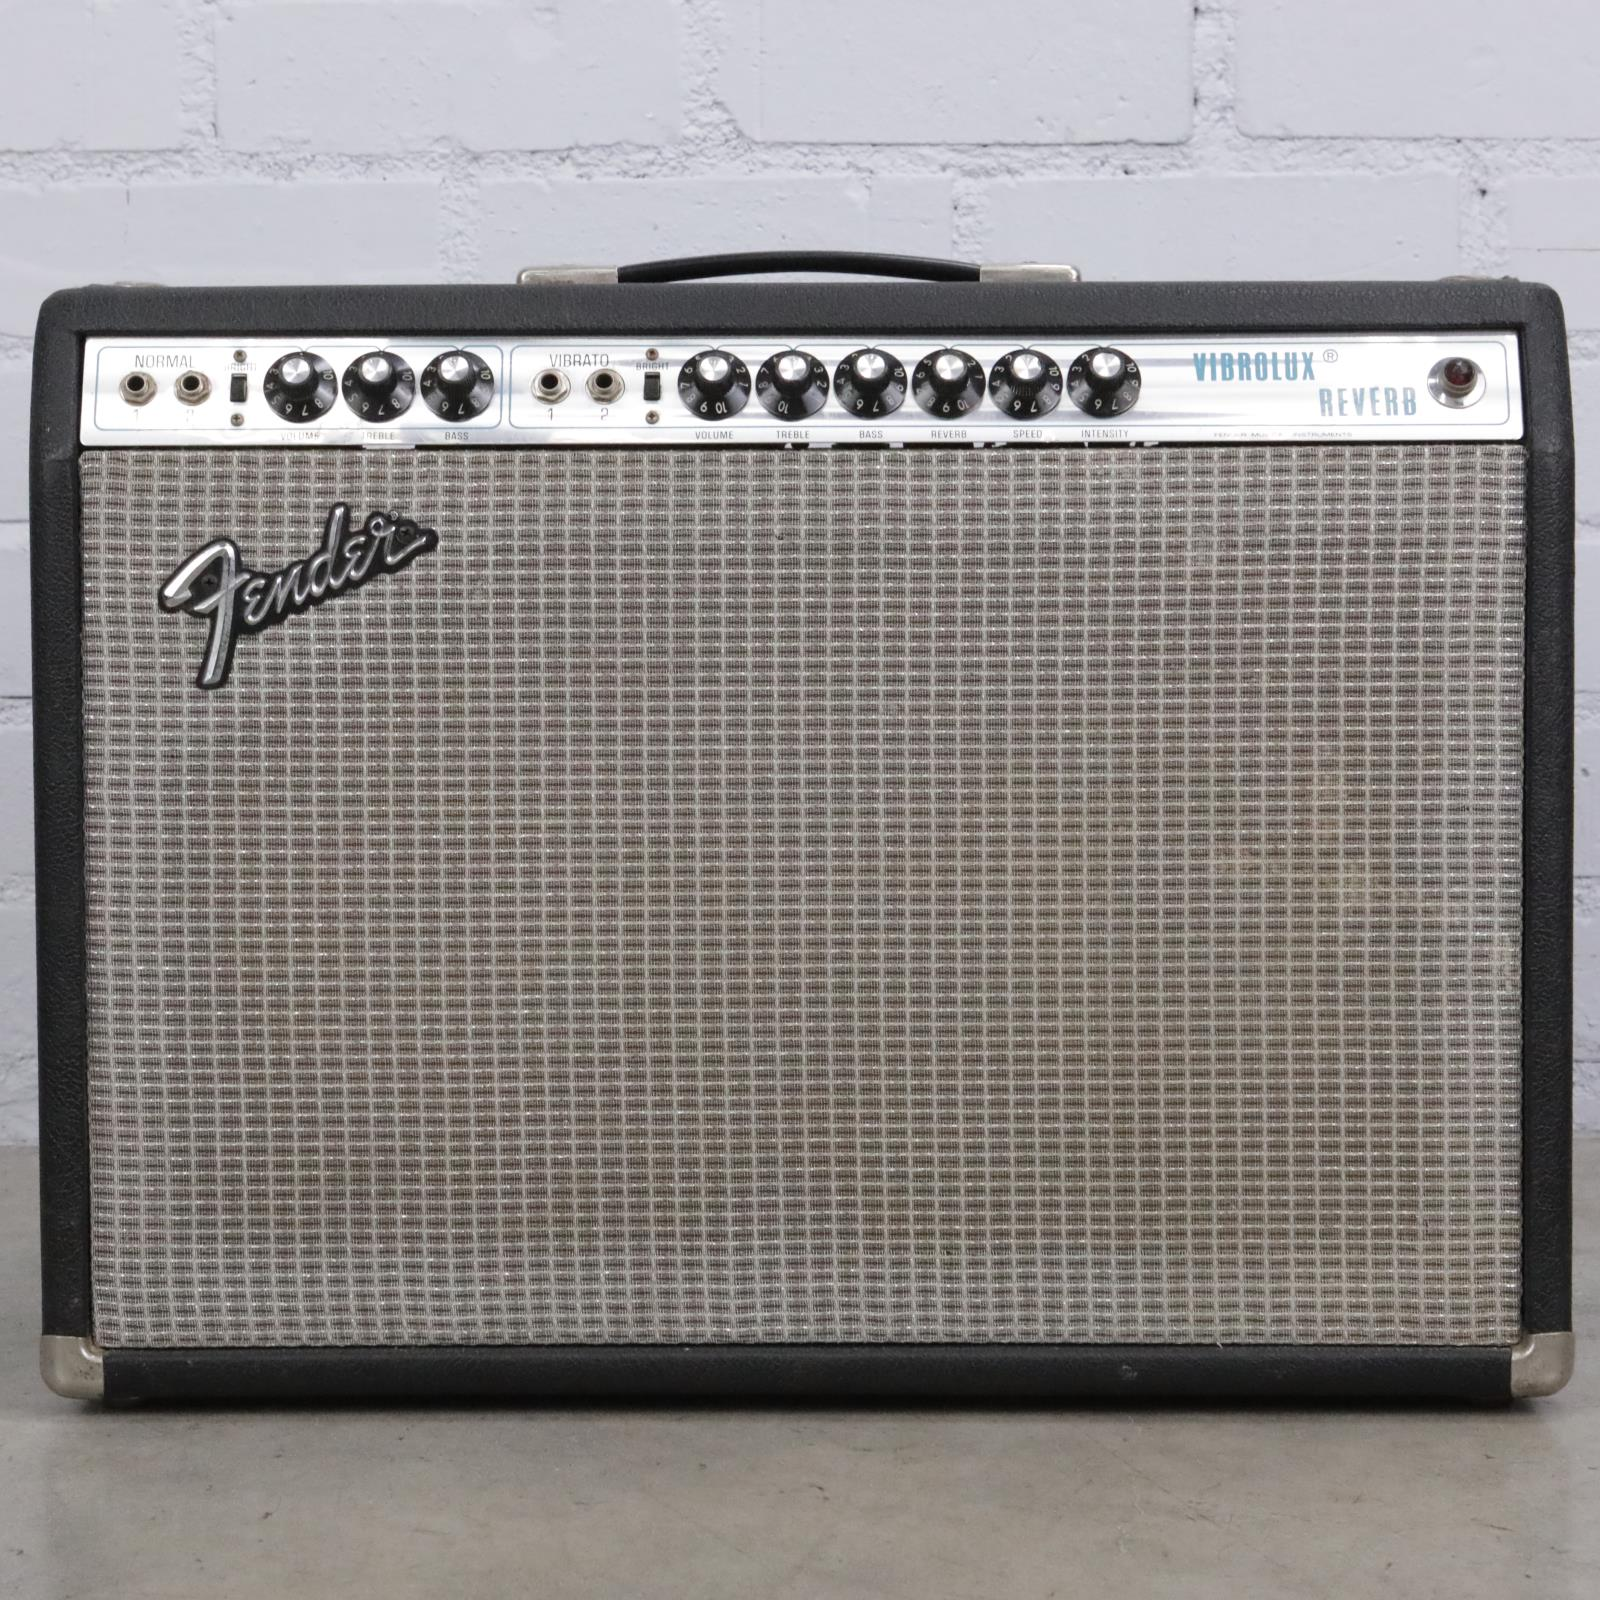 1974 Fender Vibrolux Reverb Silverface Tube Guitar Combo Amplifier #41892